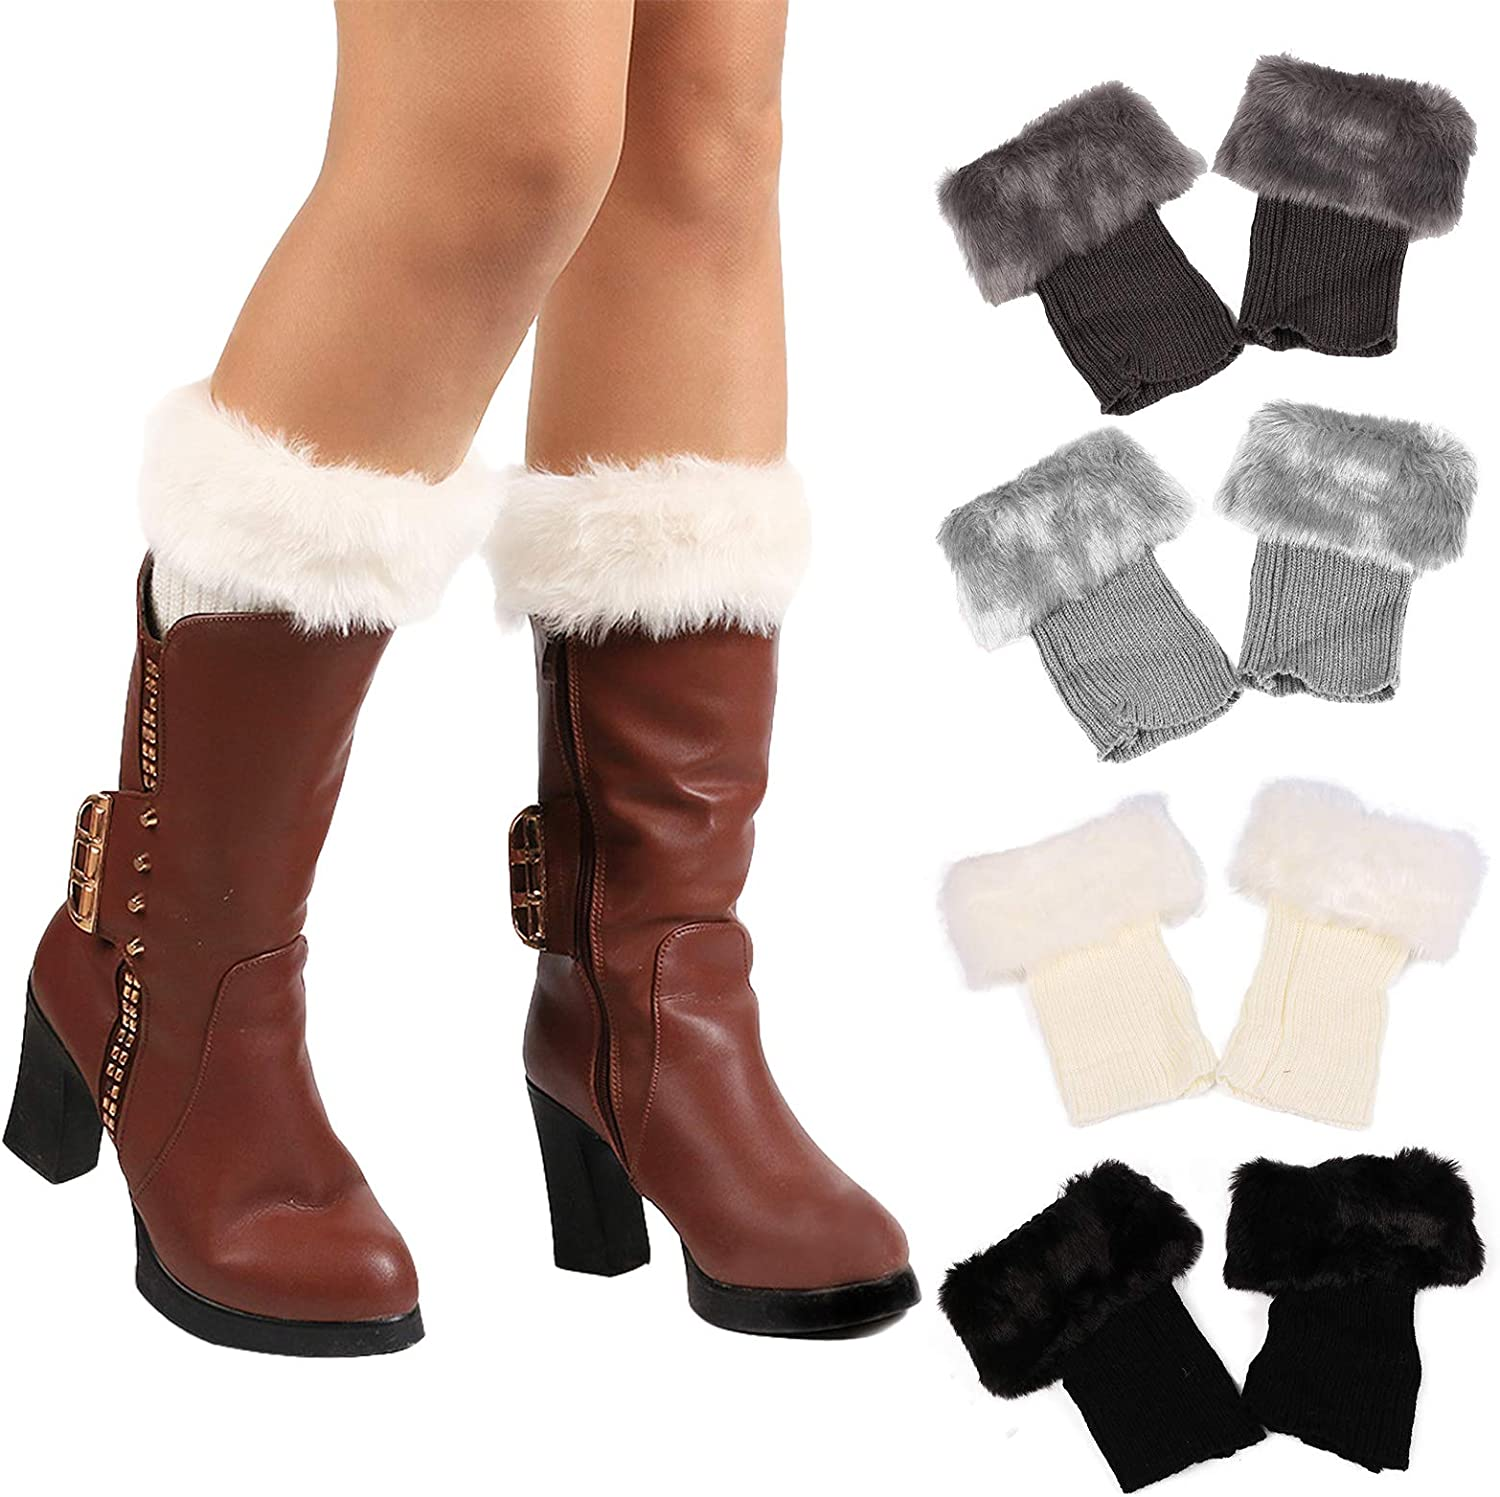 HIFUMI 4 Pairs / 6 Pairs Womens Faux Fur Trim Boot Cuff Top Cover Winter Short Knit Socks Leg Warmers, Assorted Color